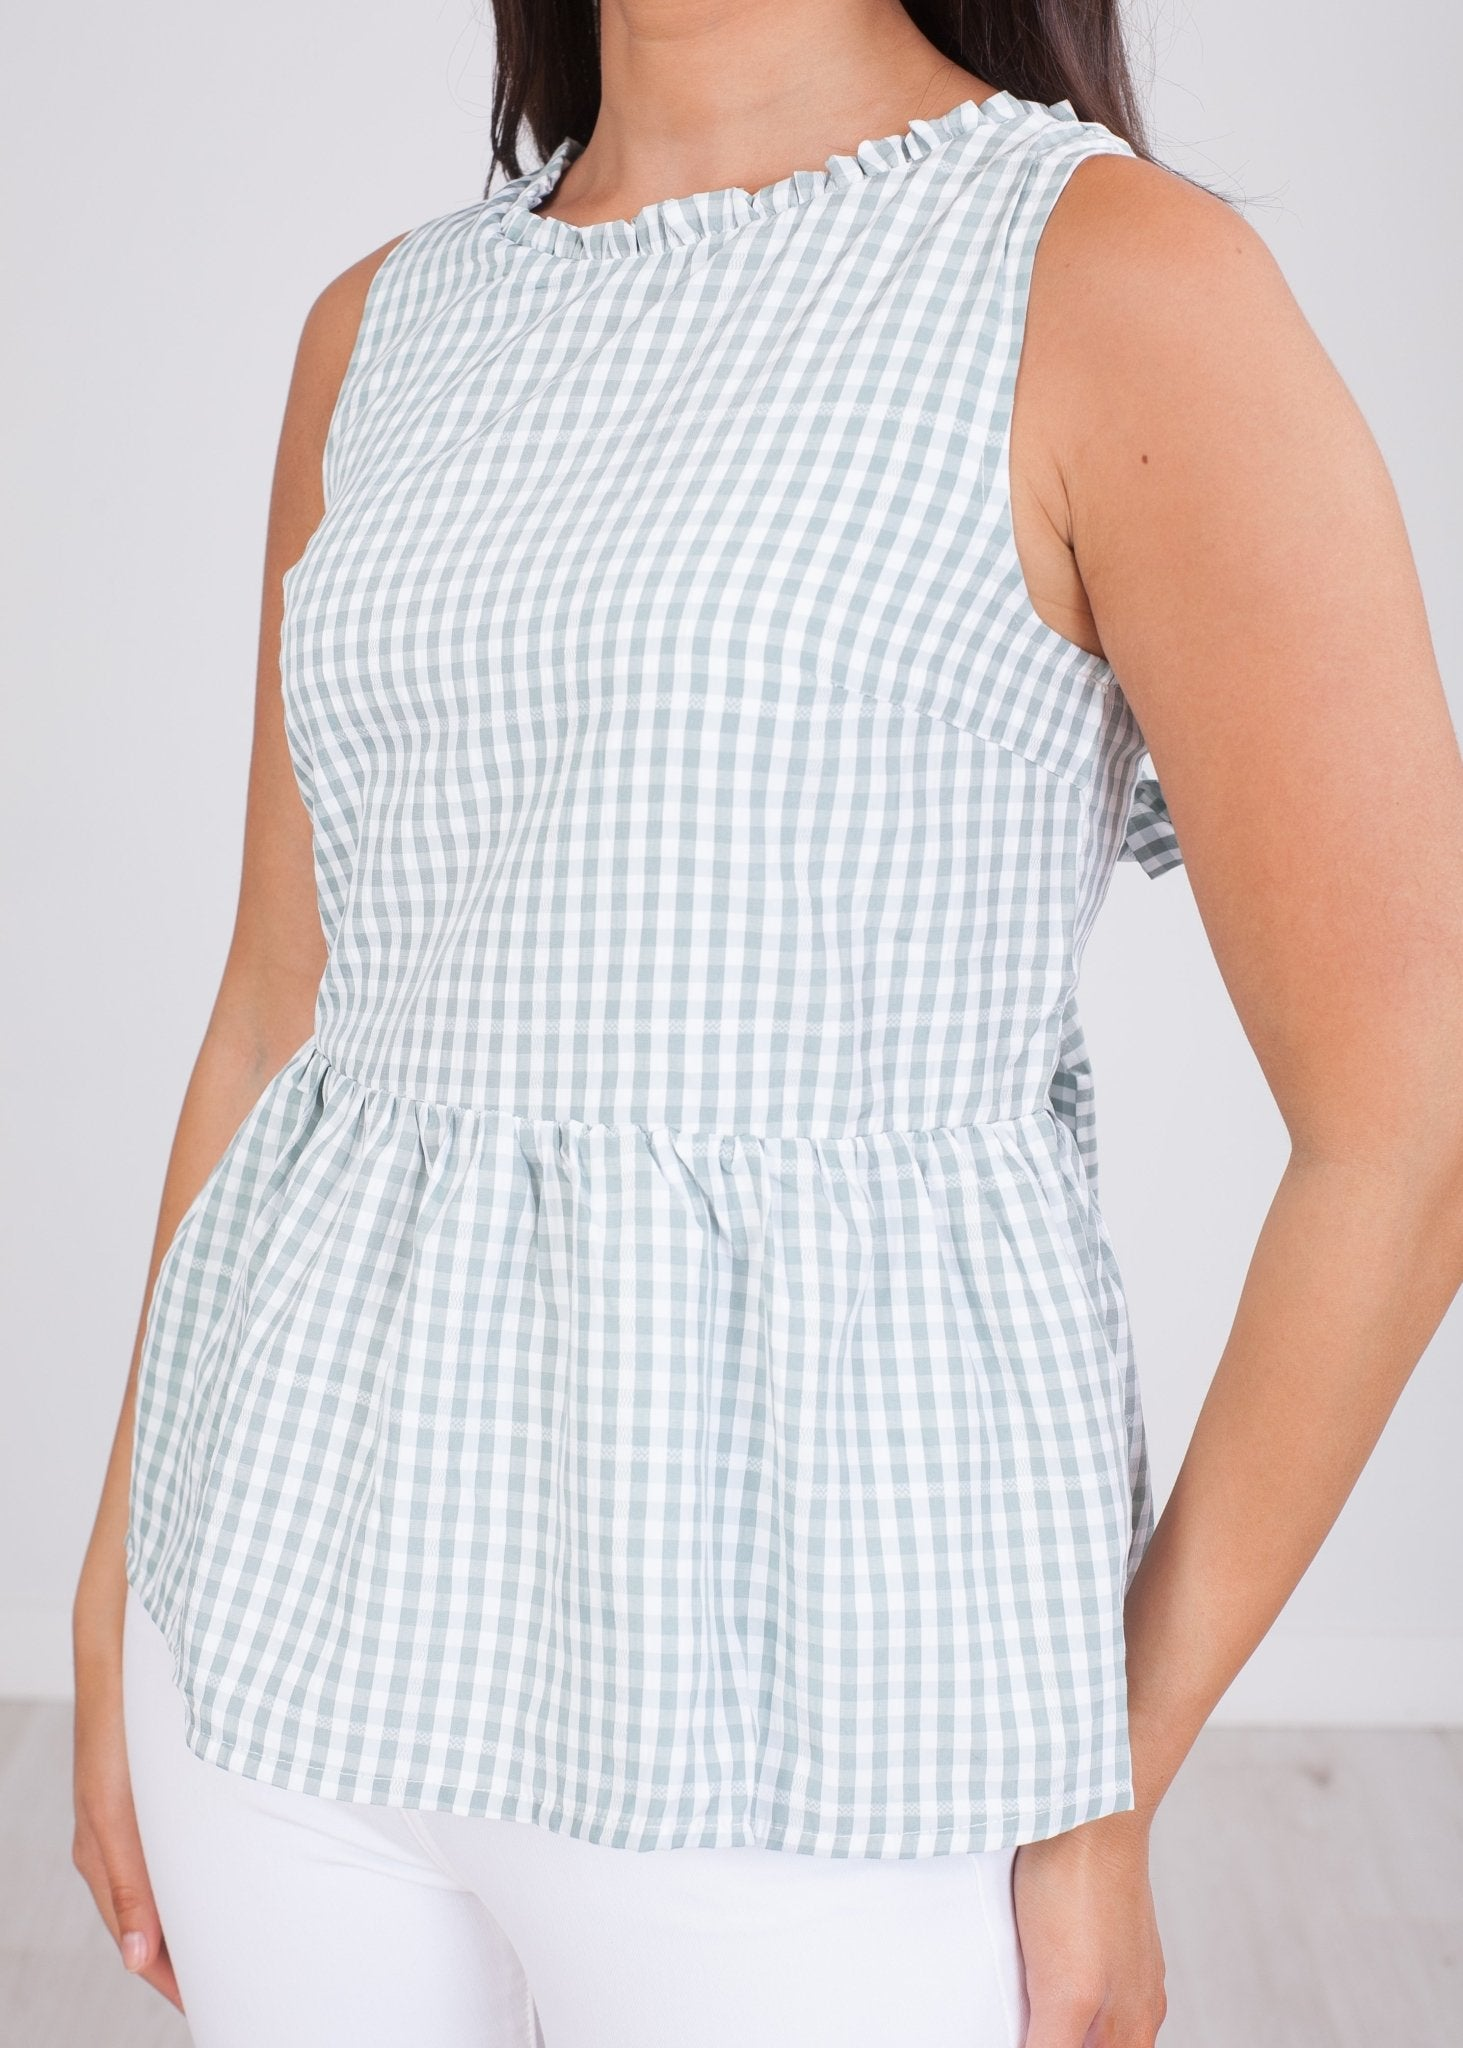 Cherie Green Gingham Top - The Walk in Wardrobe